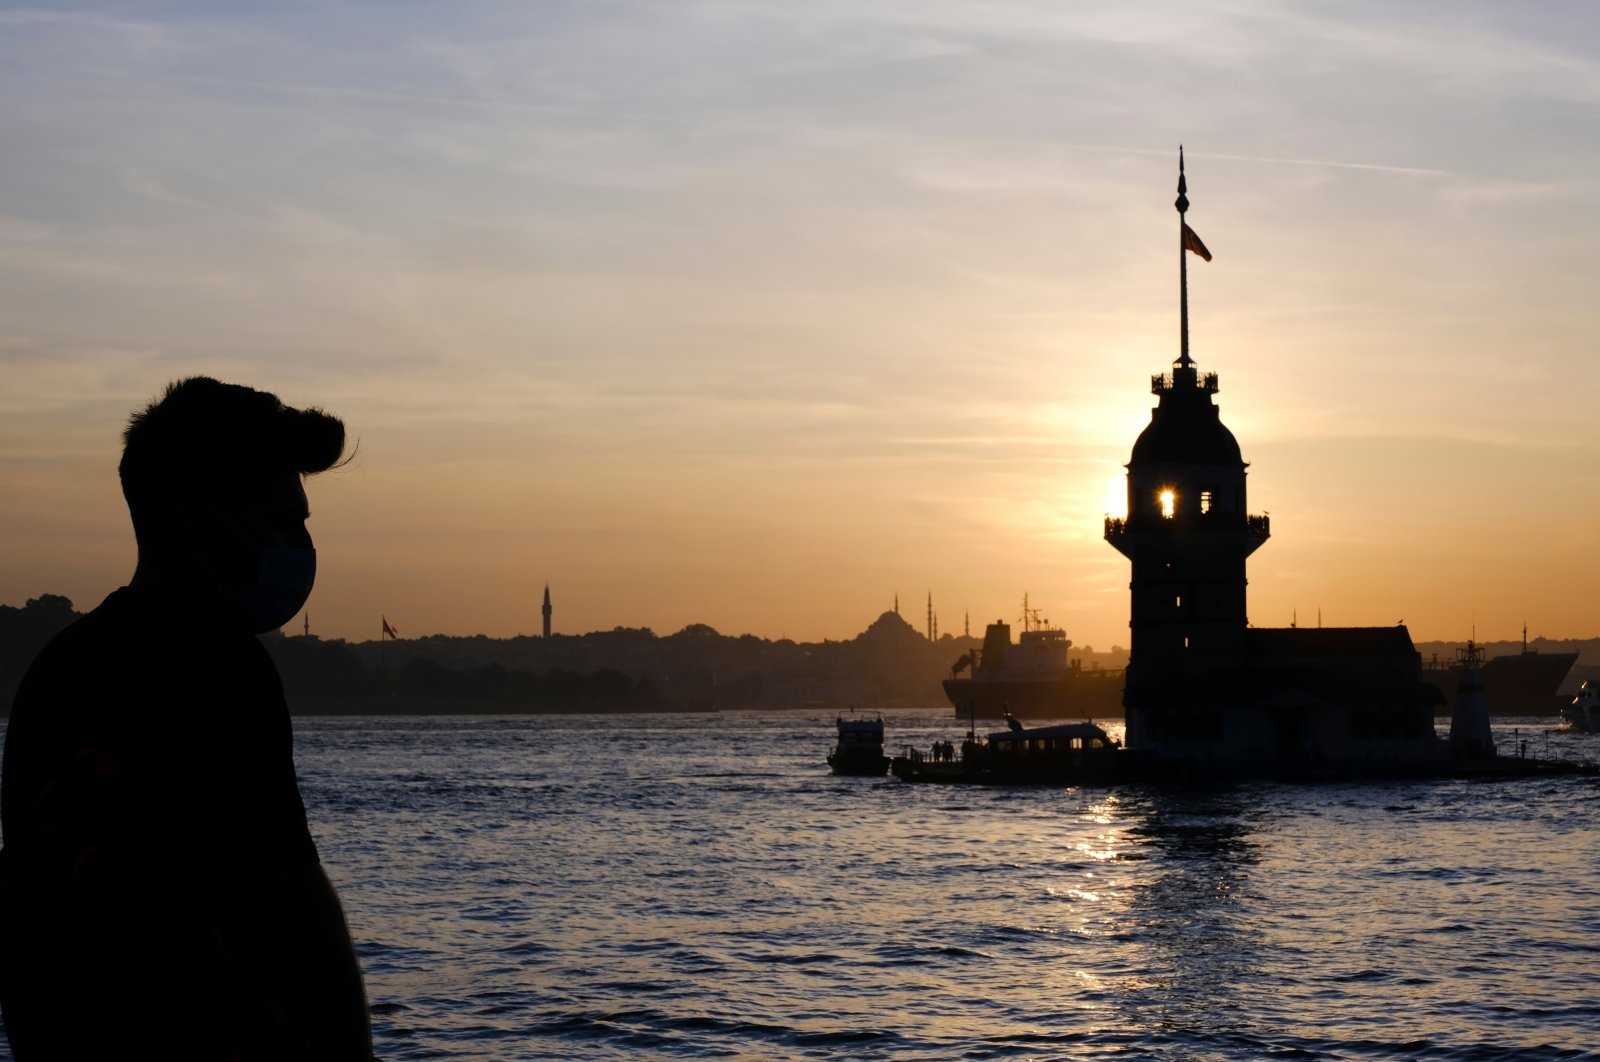 A young man, seen silhouetted, wears a mask to protect against the coronavirus as he stands in front of Maiden's Tower, Istanbul, Turkey. (Shutterstock Photo)